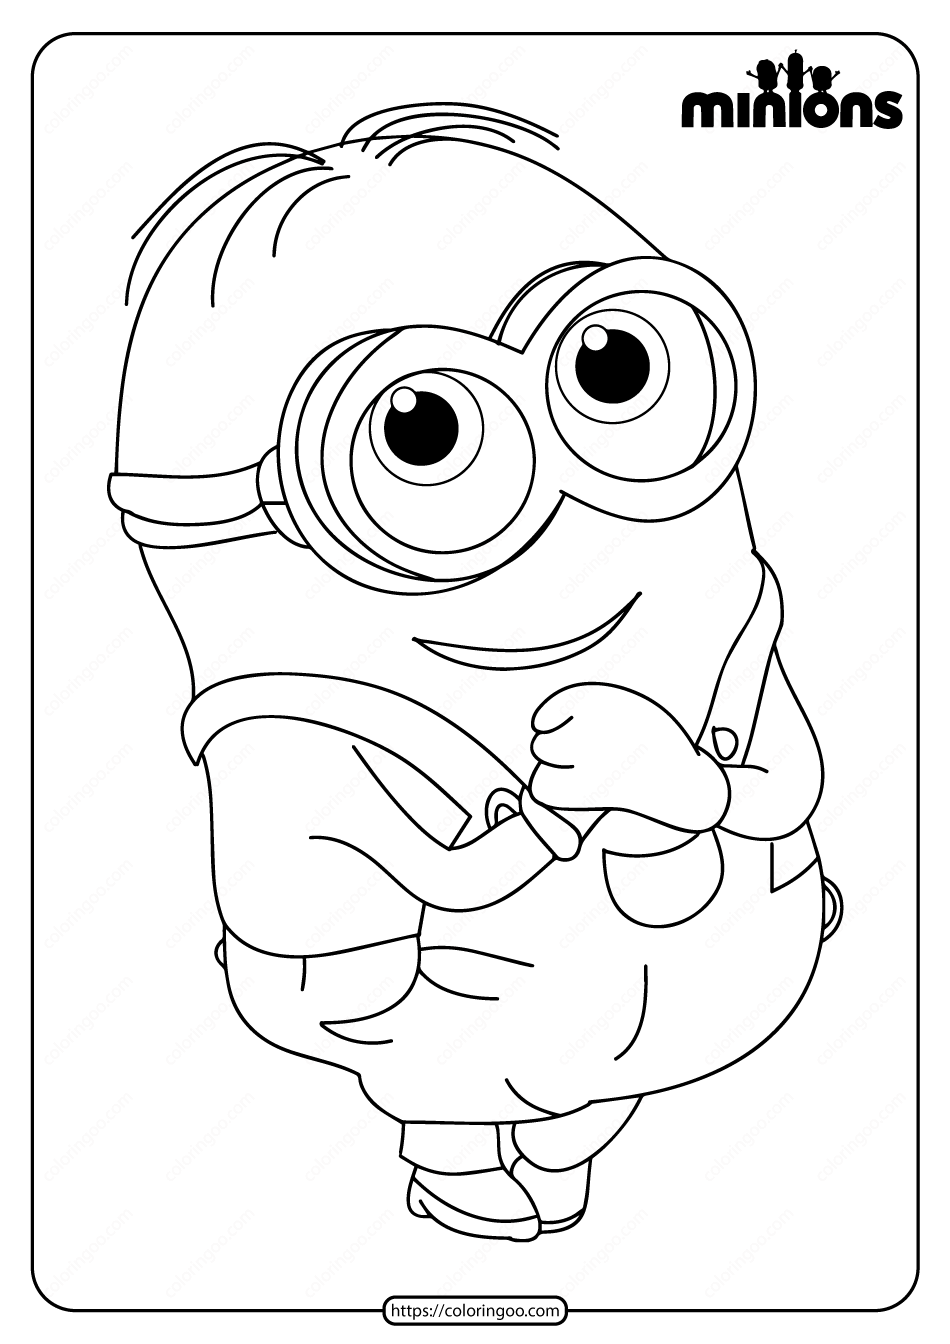 Printable Minions Pdf Coloring Page  Minion coloring pages